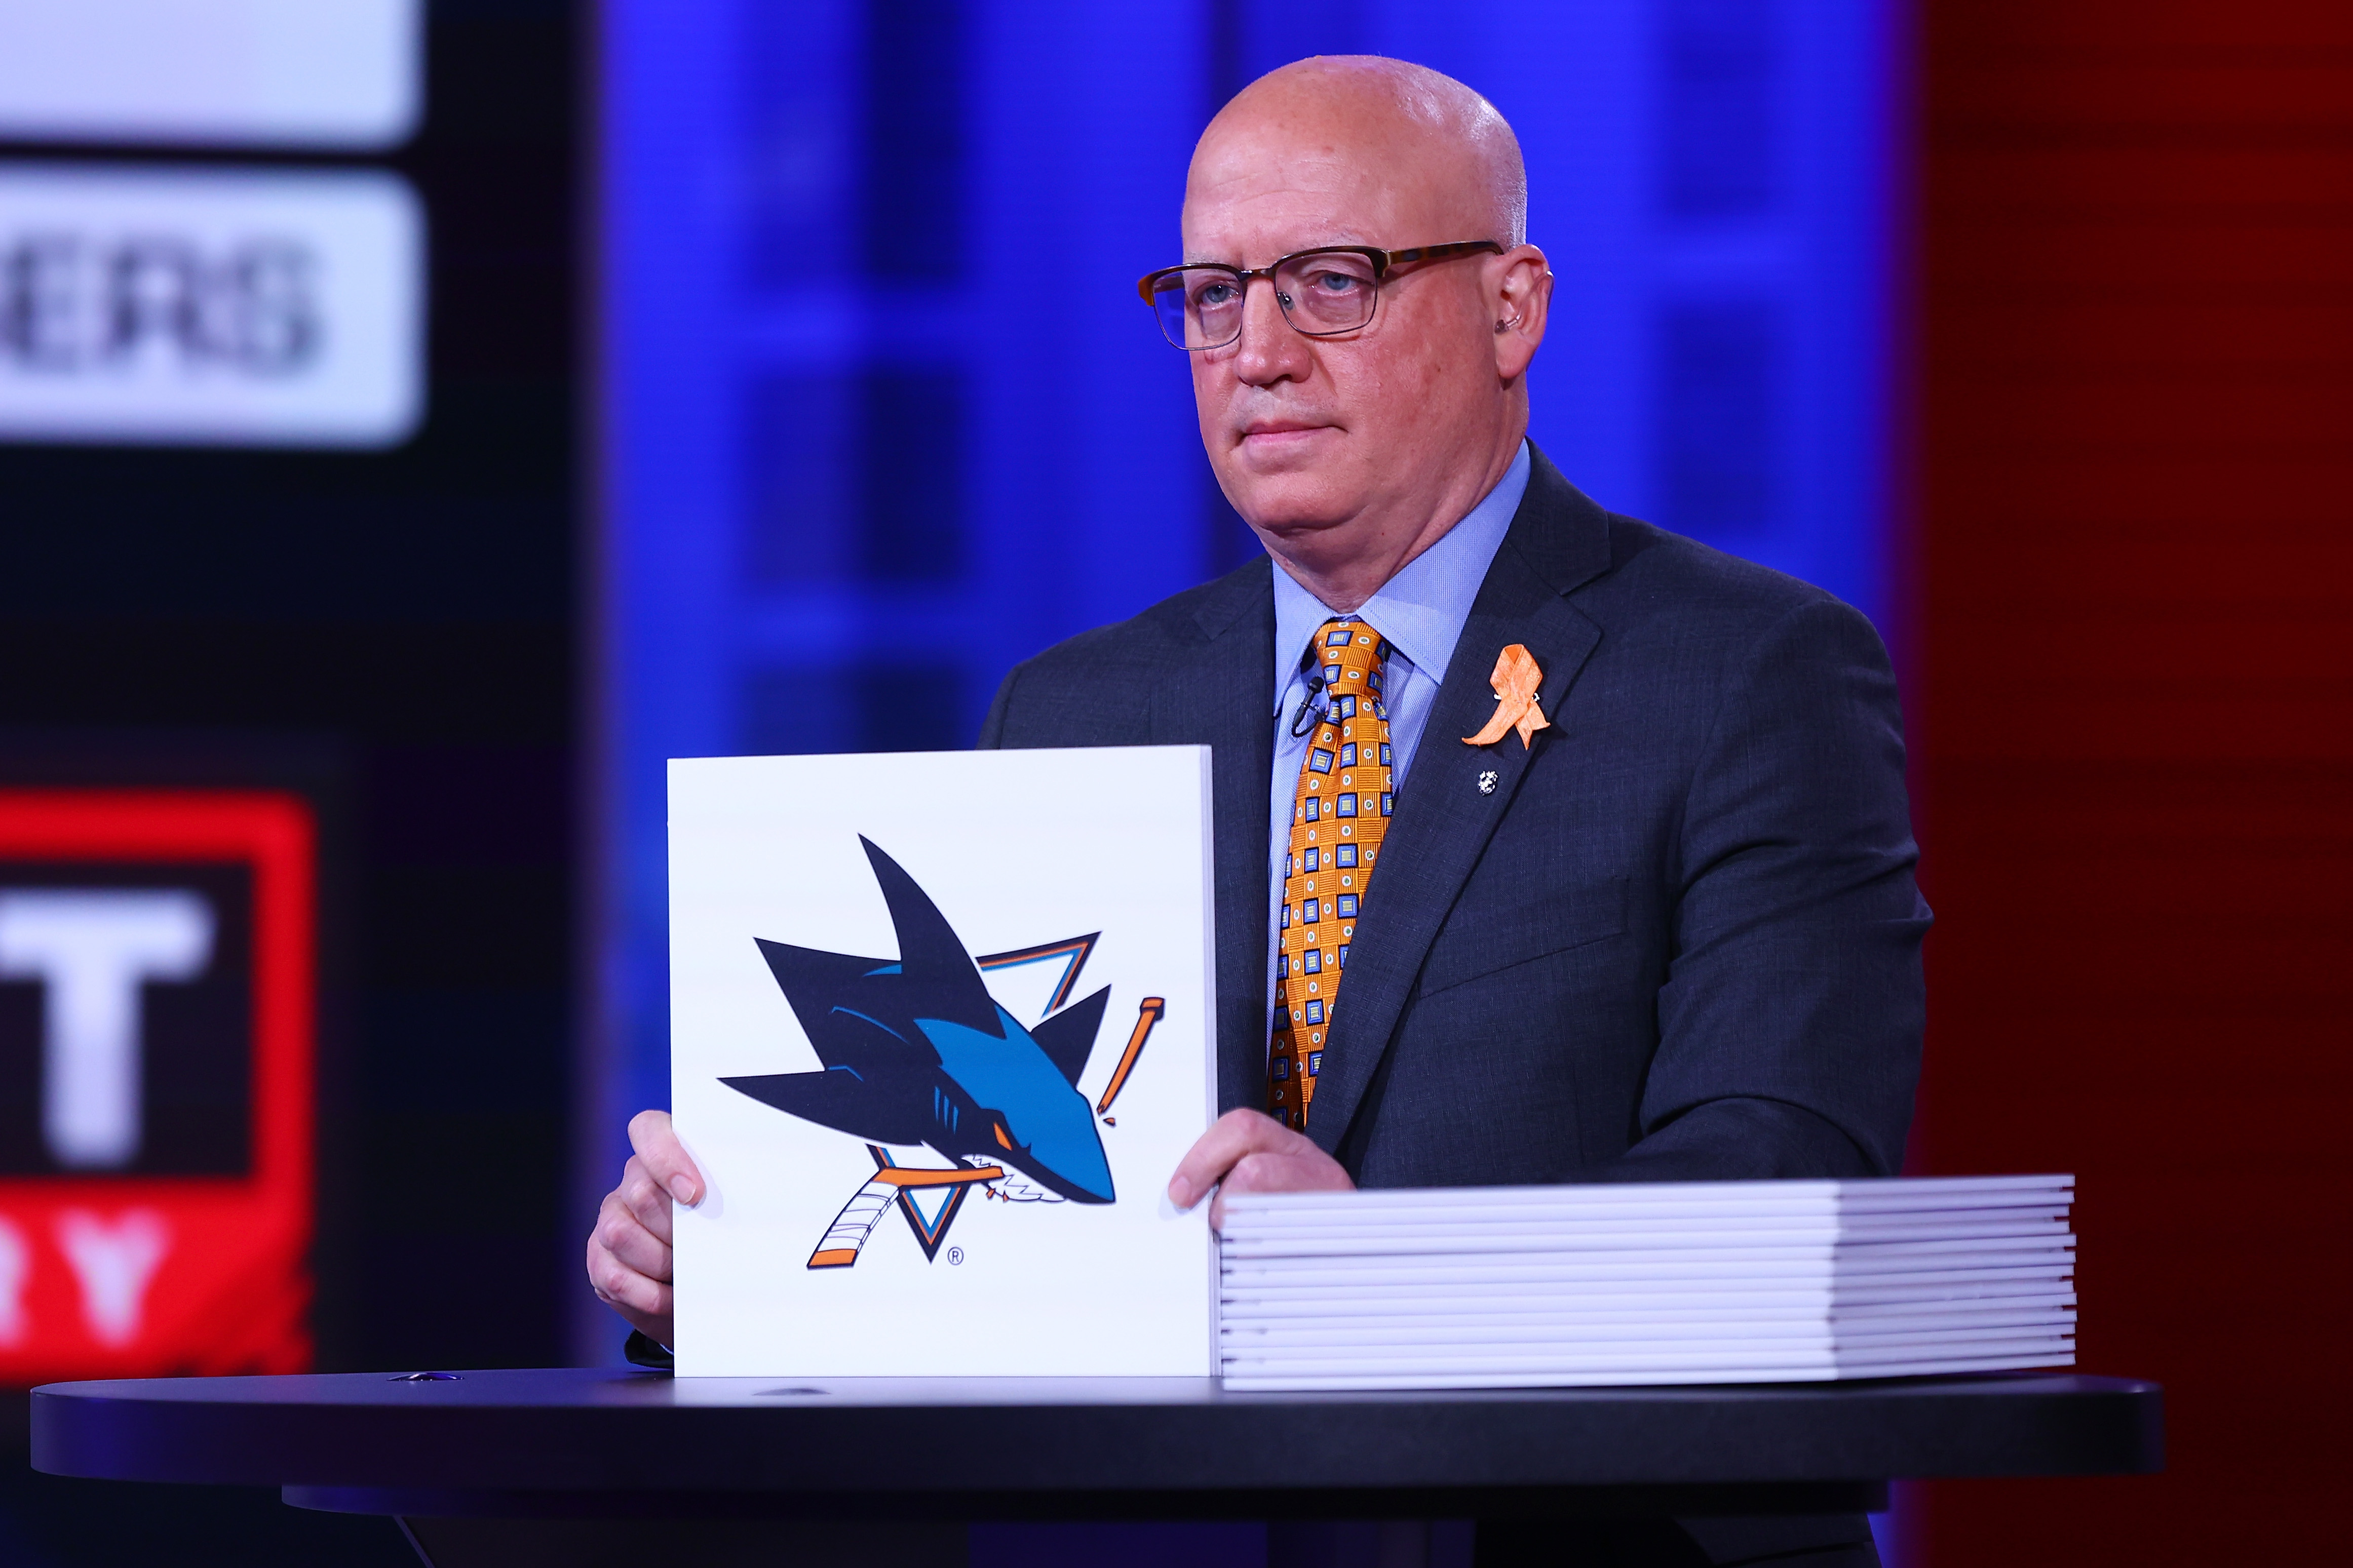 National Hockey League Deputy Commissioner Bill Daly announces an San Jose Sharks draft position during the 2021 NHL Draft Lottery on June 02, 2021 at the NHL Network's studio in Secaucus, New Jersey.